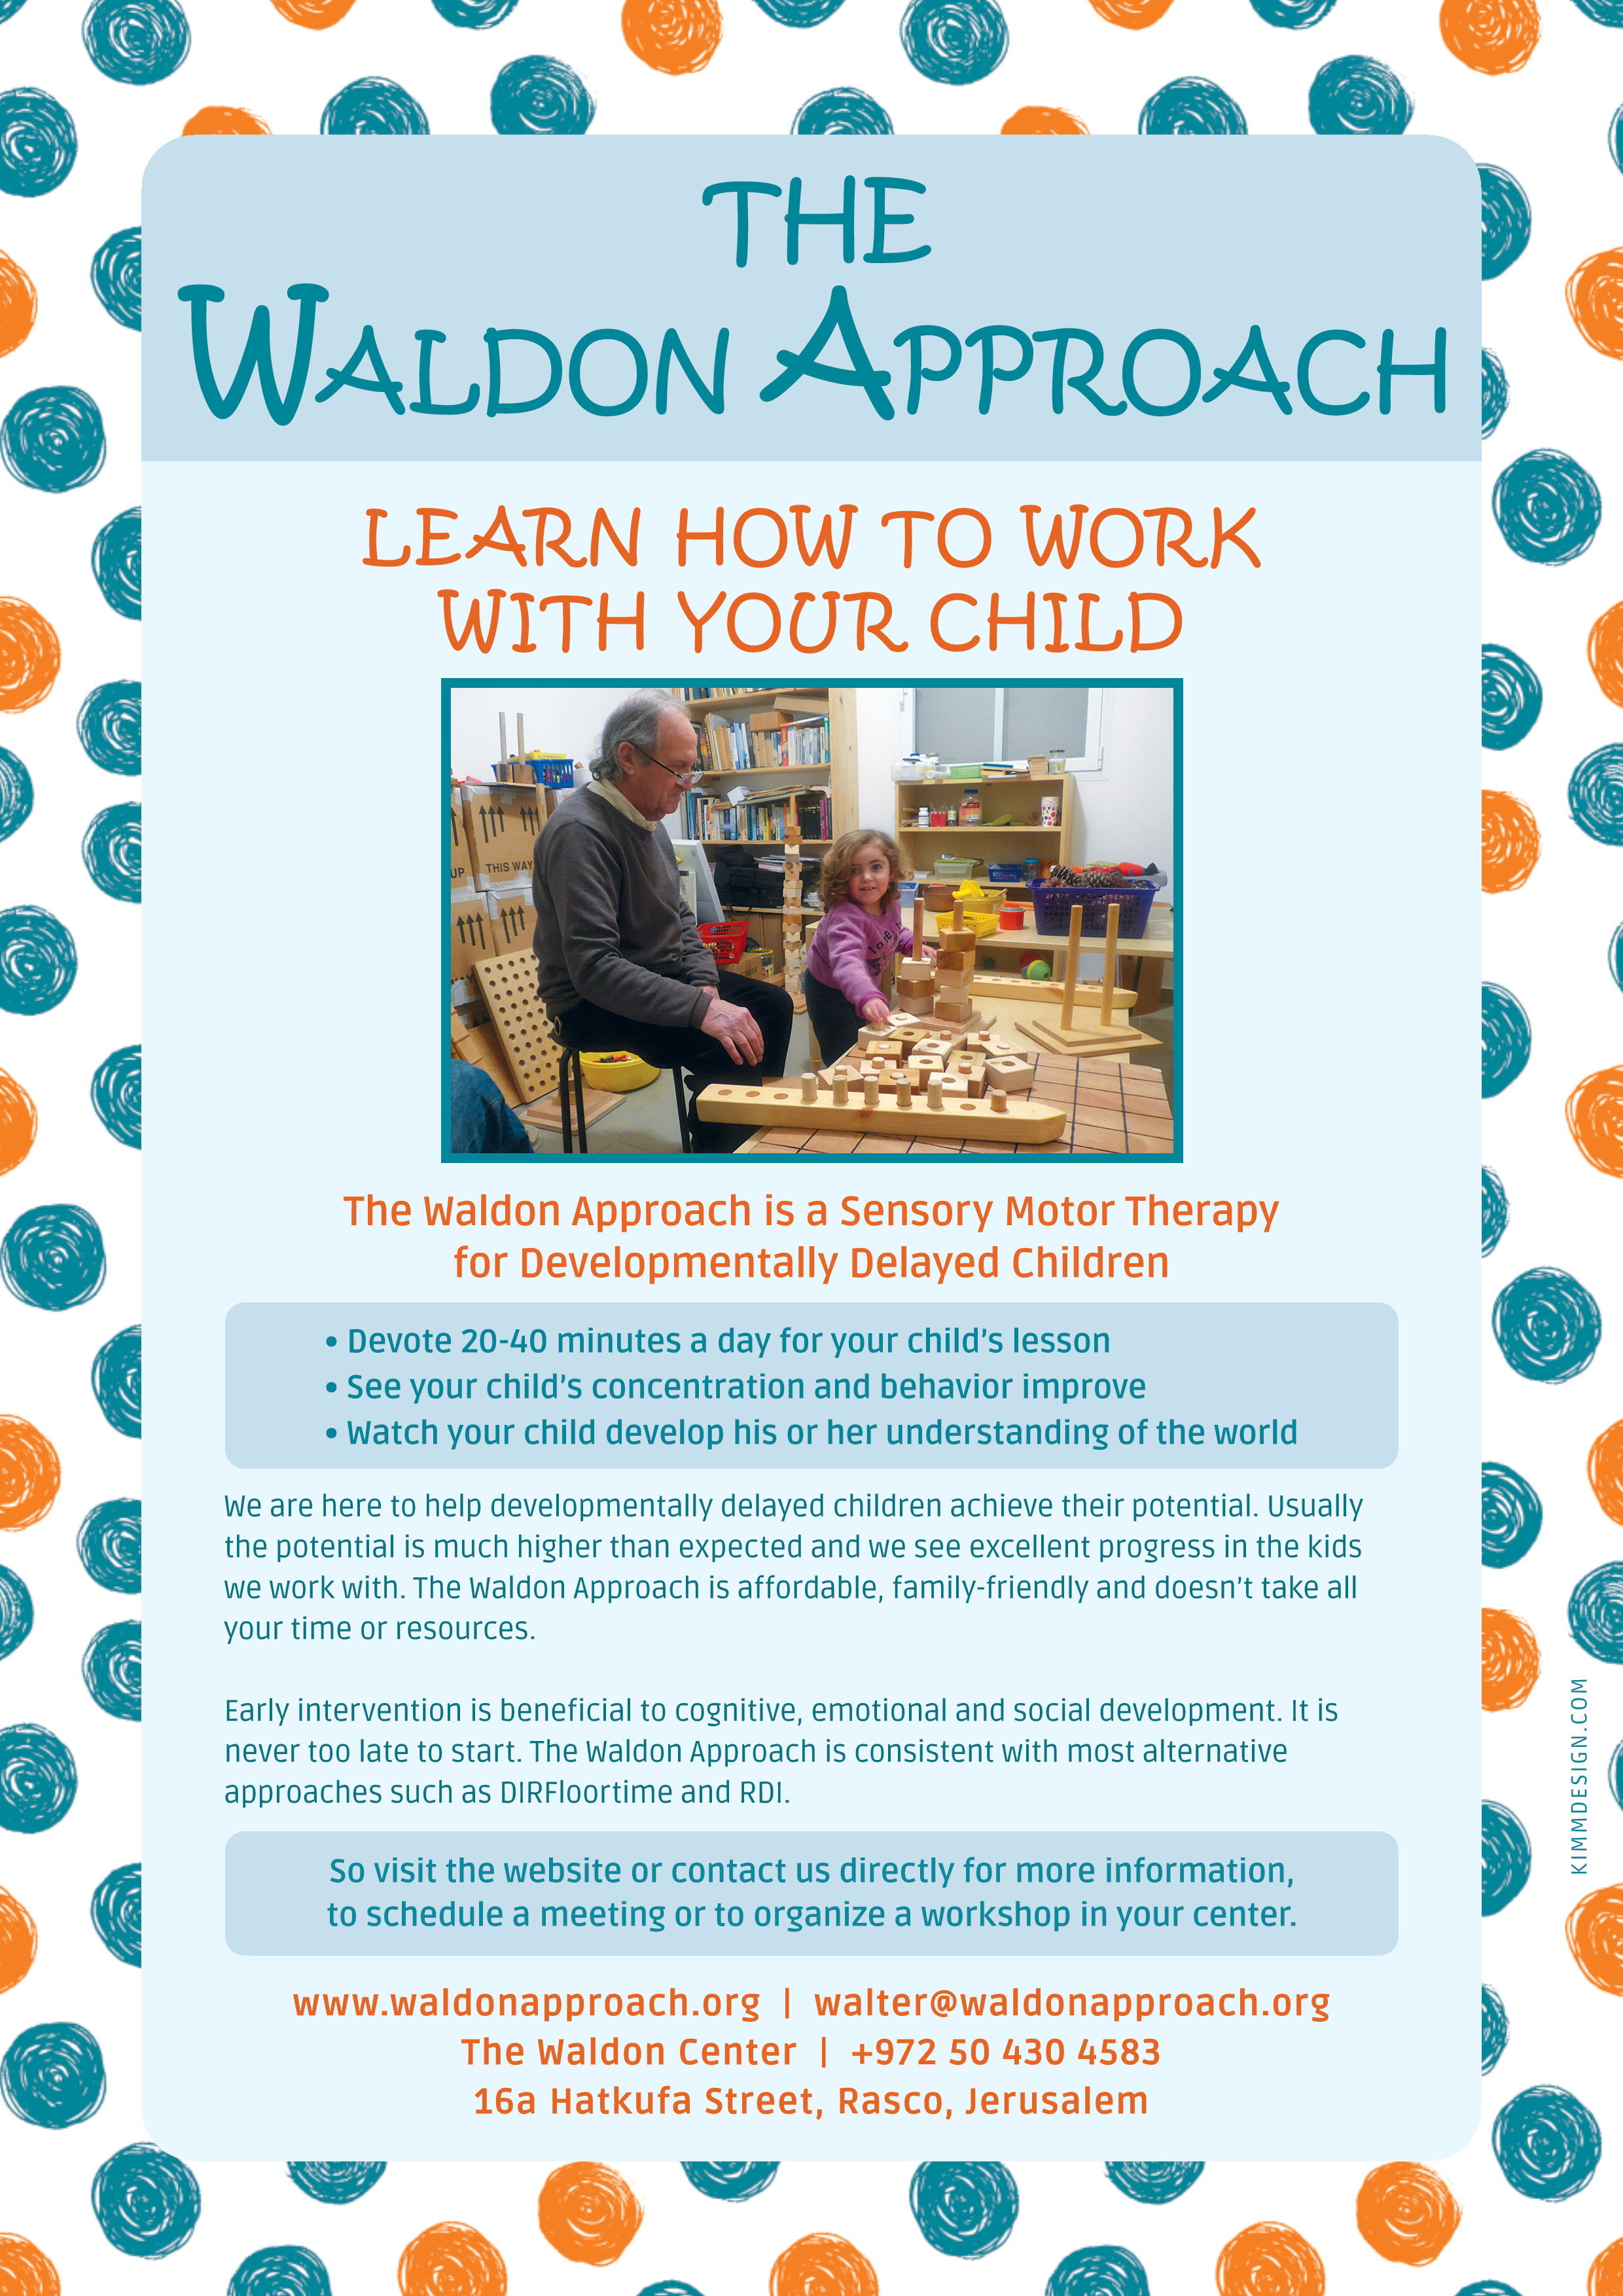 Jerusalem Waldon Center - Flier - English